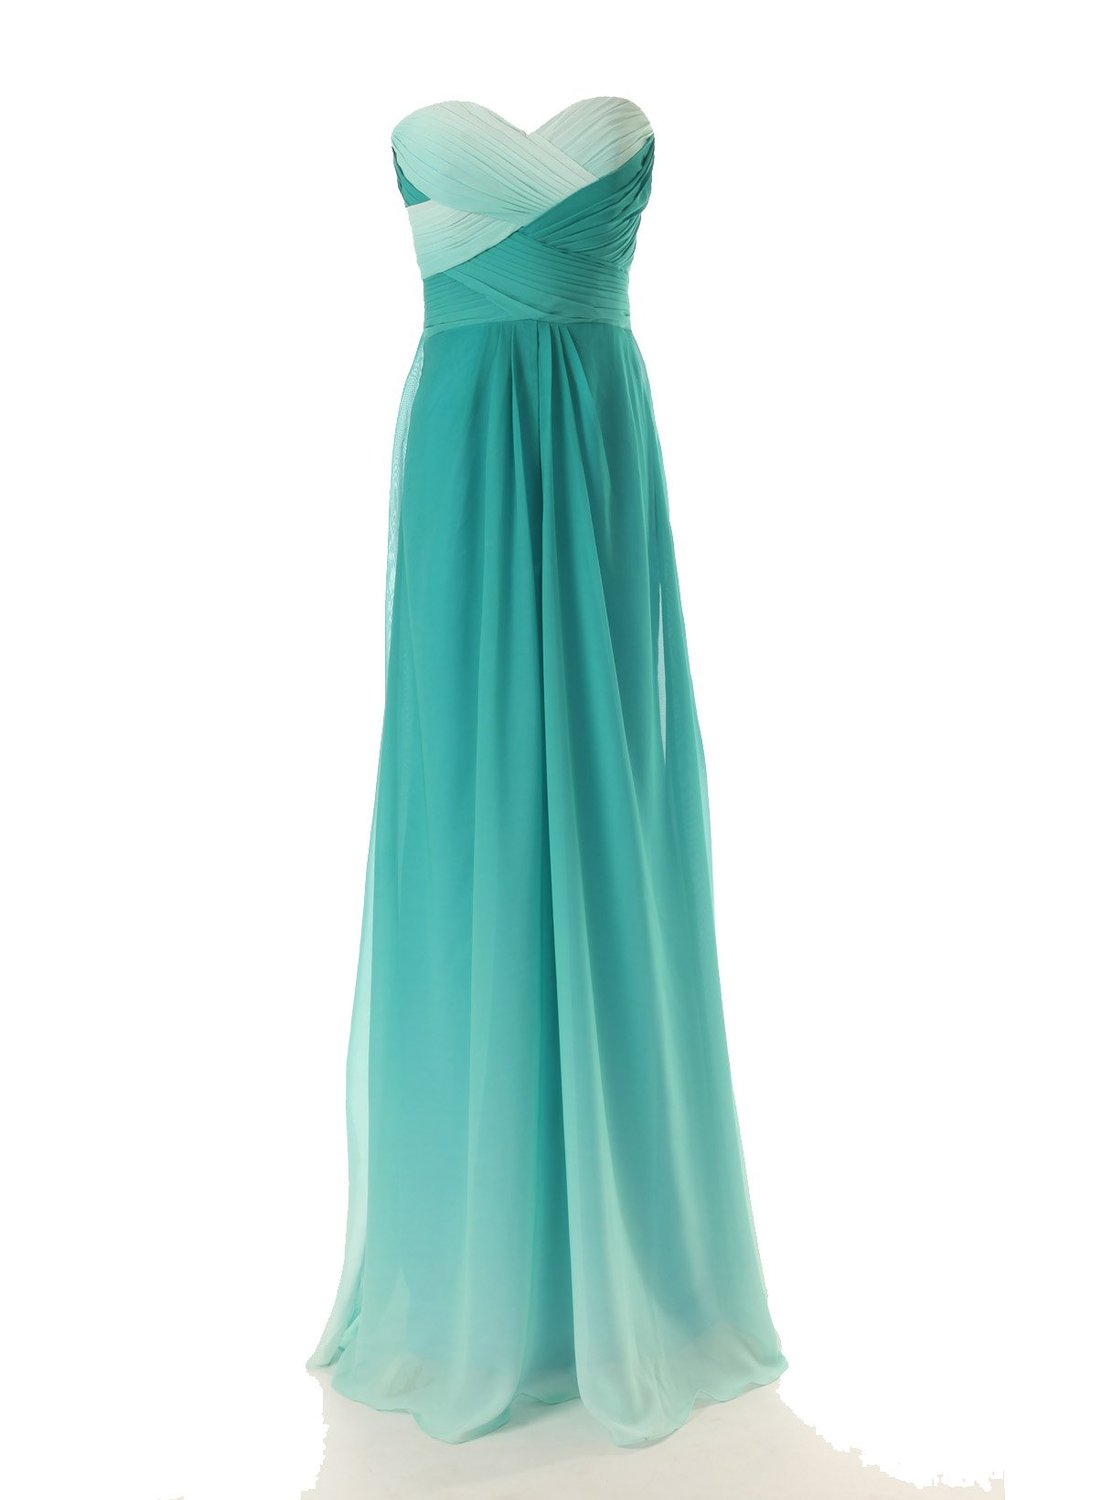 Princess sweetheart floor length chiffon green prom dress with sequin napd0019 sale at shopindress.com